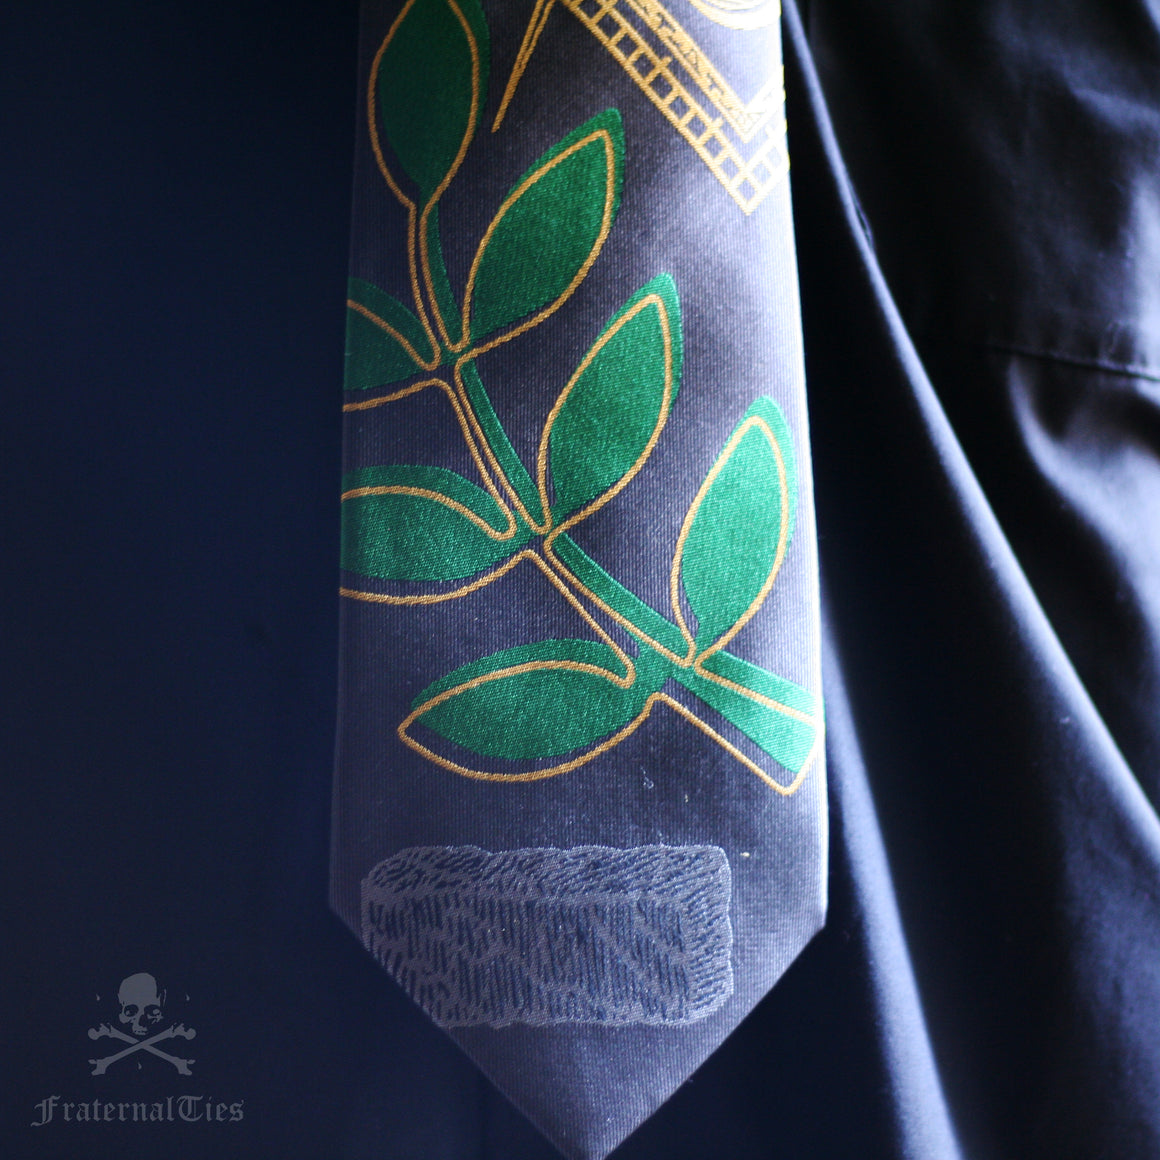 The Widow's Son Masonic Tie